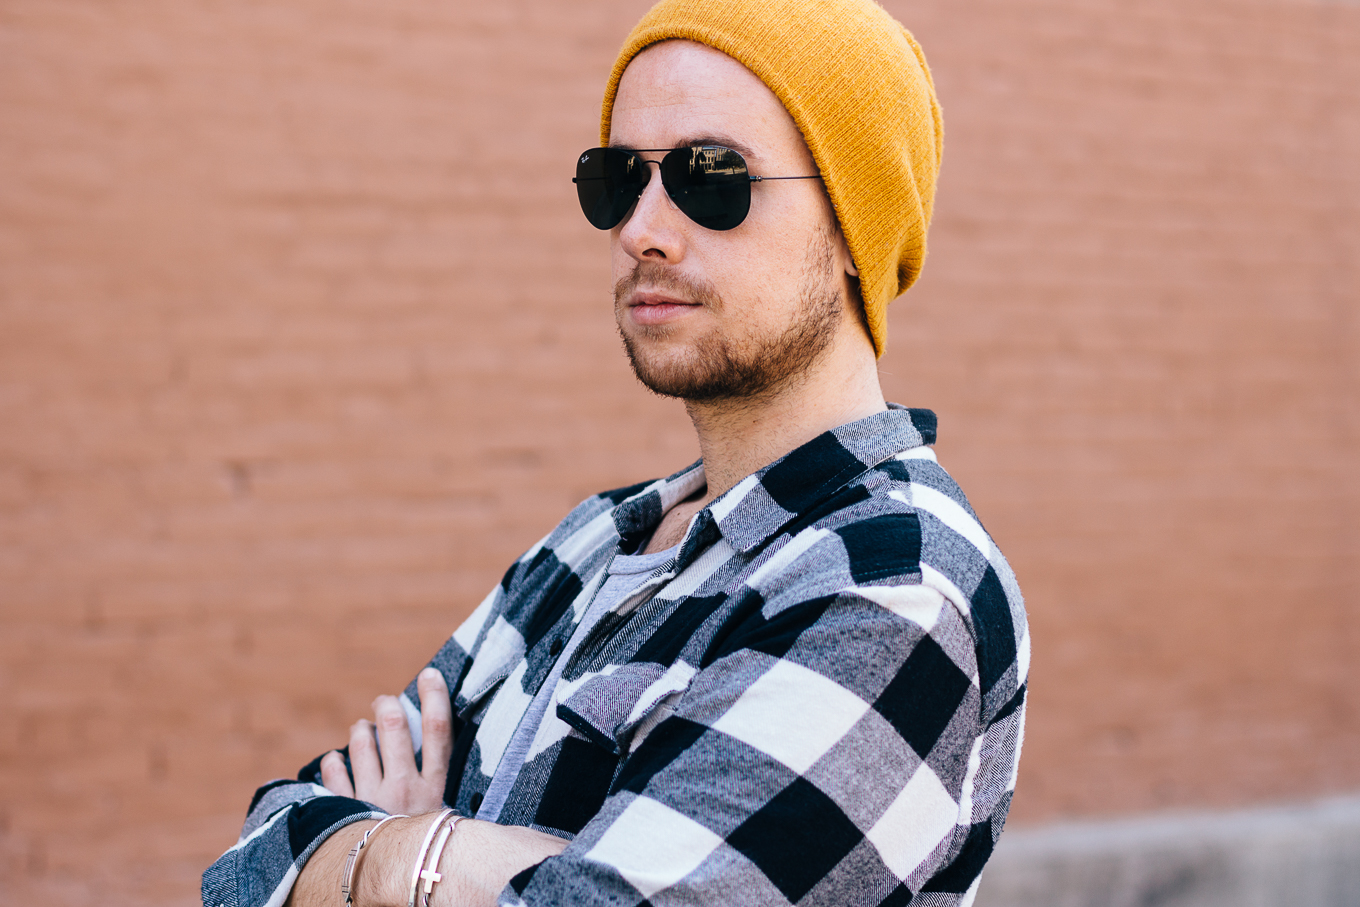 urban outfitters, mens plaid shirts, how to dress like a lumbersexual, mens fall fashion, mens fall fashion blogger